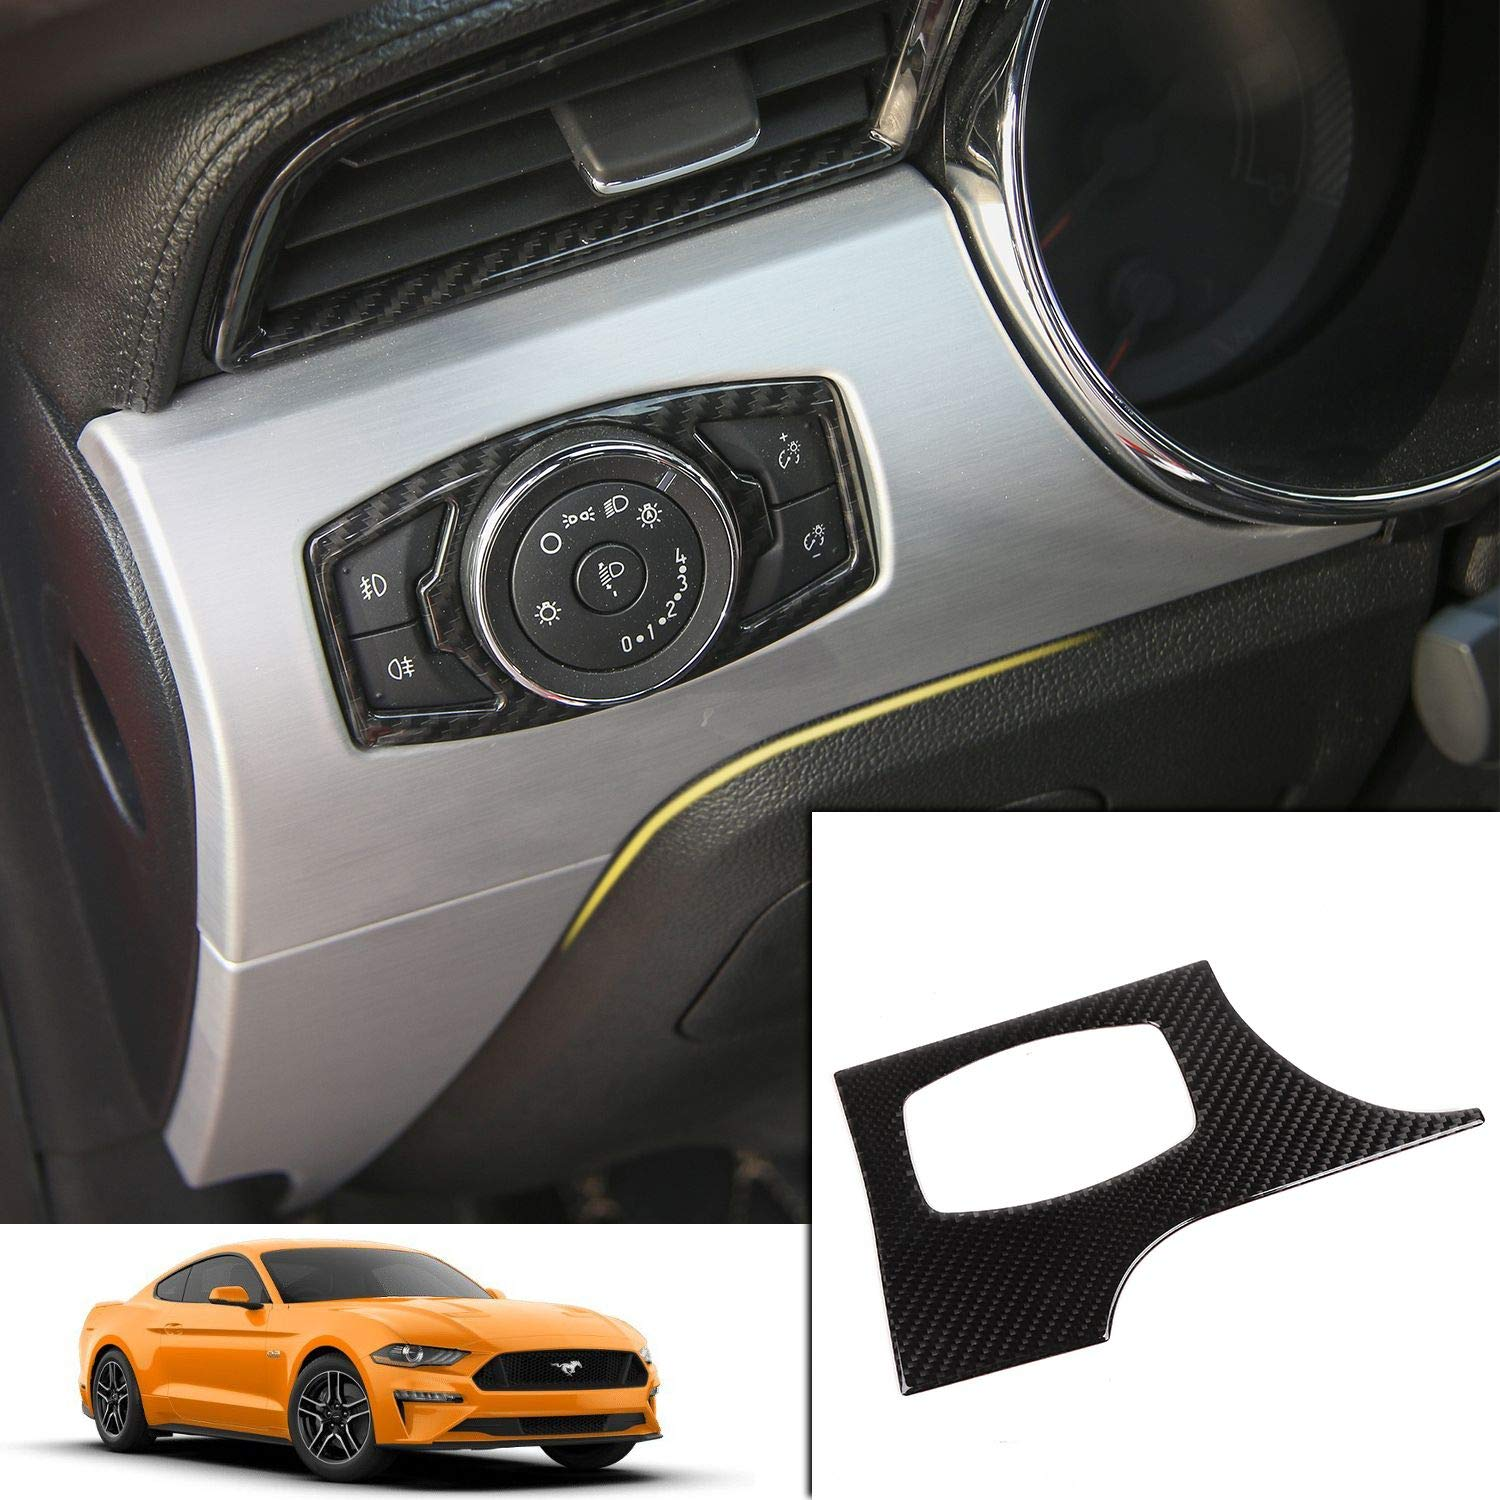 Car Headlight Switch Button Cover Trim Panel Decoration Frame for Ford Mustang 2015 2016 2017 (Carbon Fiber)